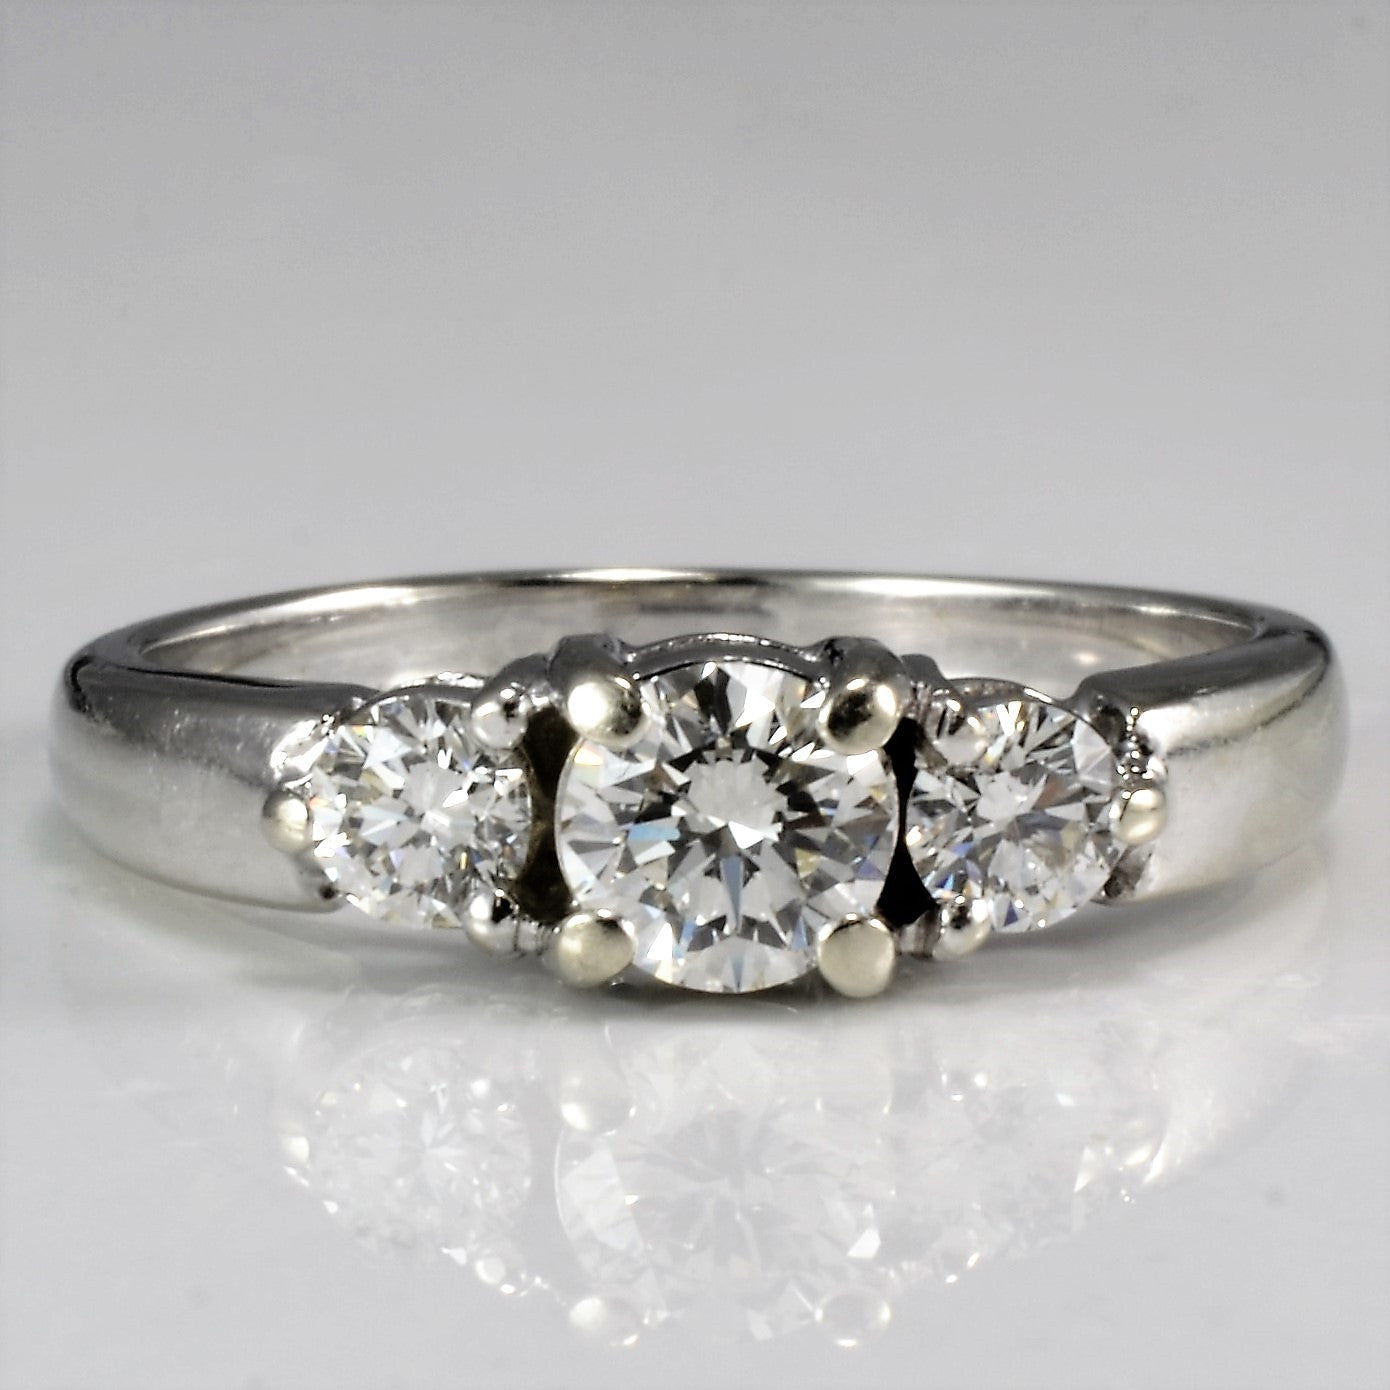 Elegant Three Stone Engagement Ring | 0.55 ctw, SZ 5.5 |